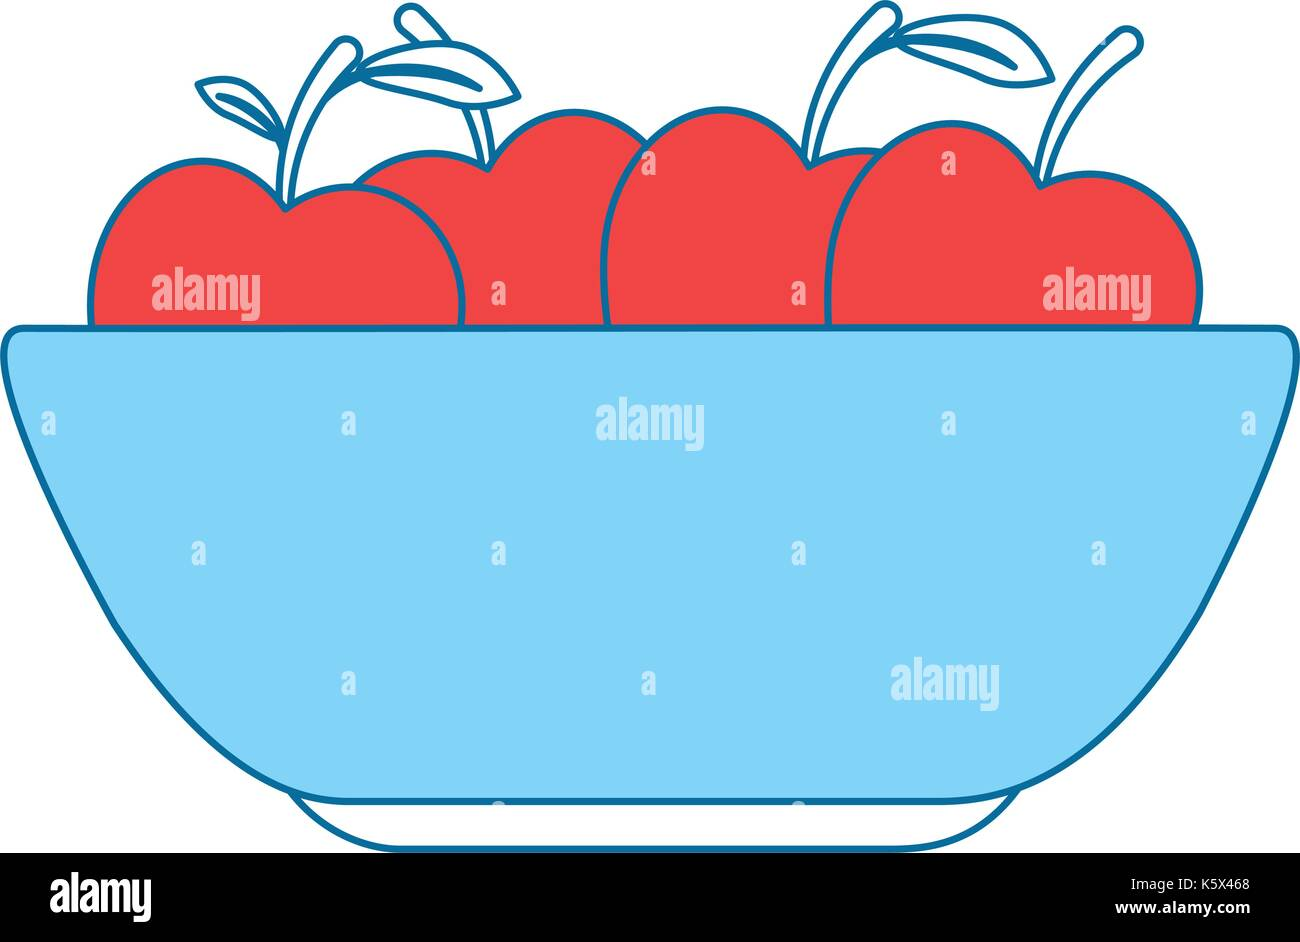 Apples Stock Vector Images - Alamy